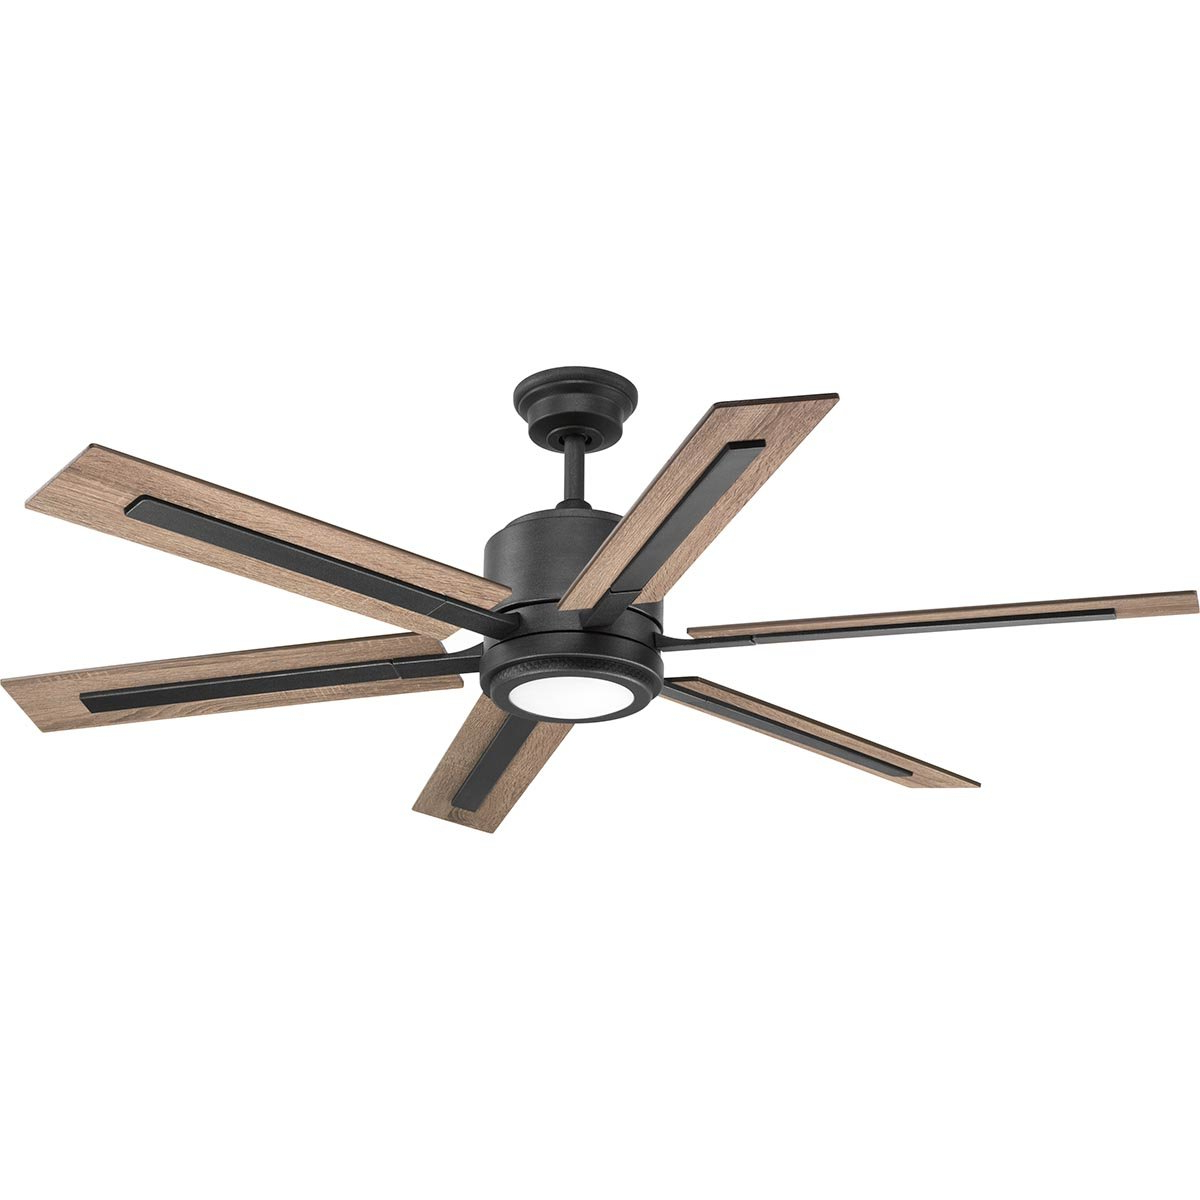 """Crestfield 5 Blade Led Ceiling Fans With Regard To Trendy 60"""" Lesure 6 Blade Led Ceiling Fan With Remote, Light Kit Included (View 6 of 20)"""